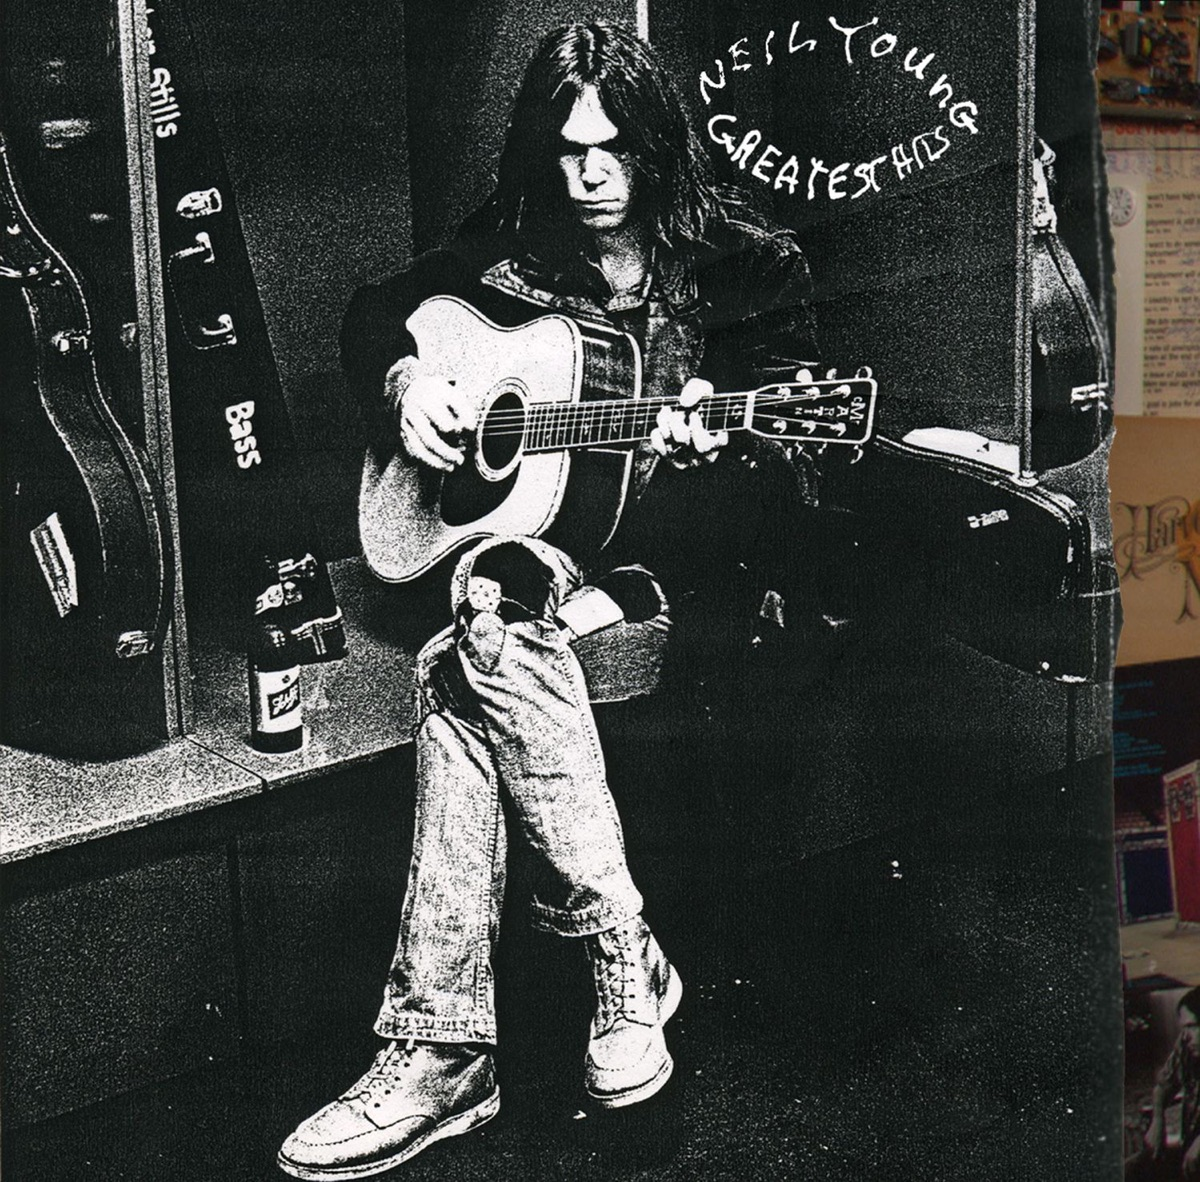 Greatest Hits Neil Young CD cover